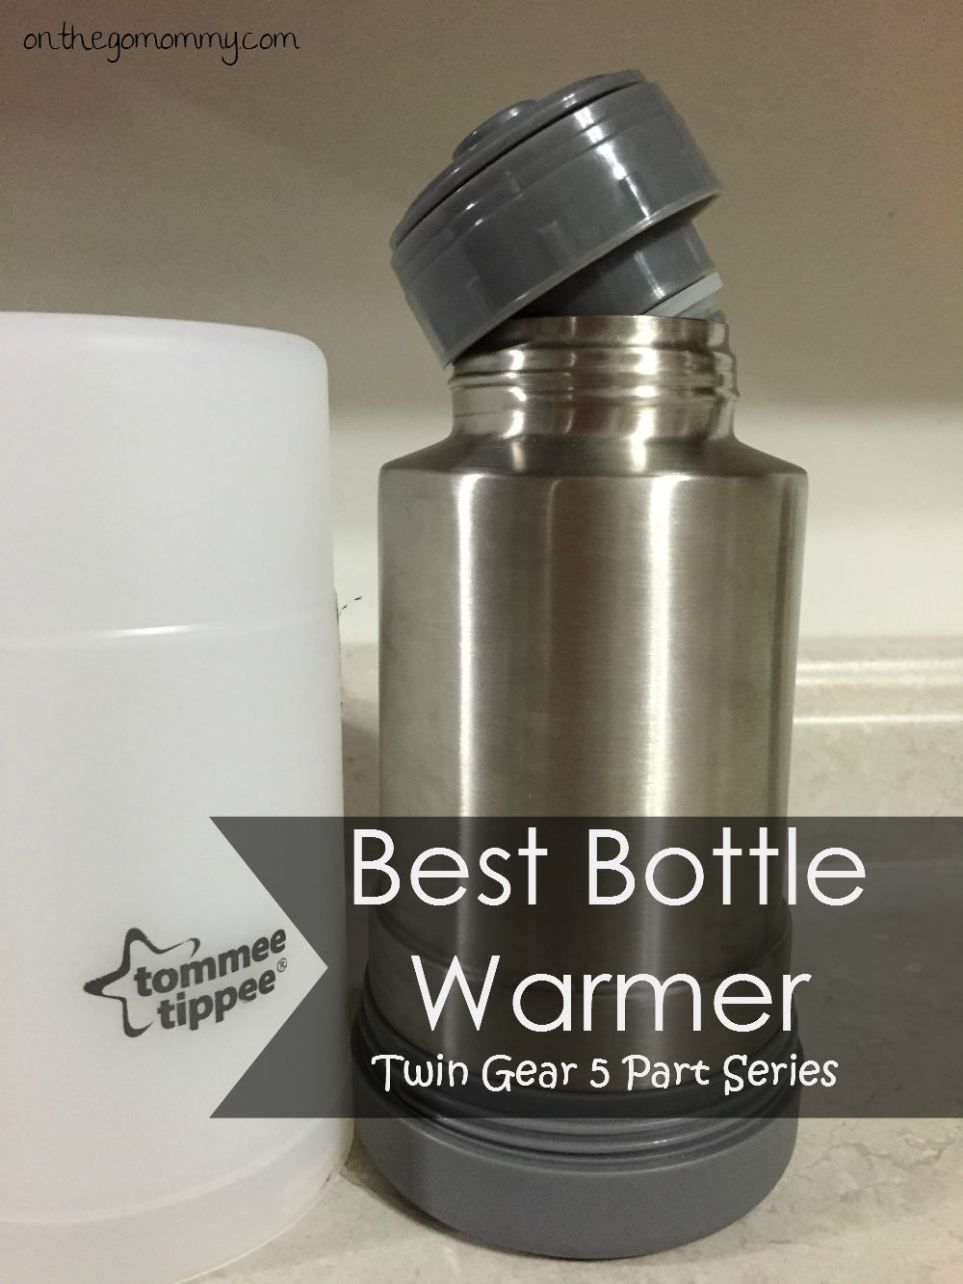 The Tommy Tippee bottle warmer is the best warmer hands down! Read more about how I decided to get this warmer, how I have used it, if I bought it new or used, and if I could have done without it. I highly recommend this to any mom!